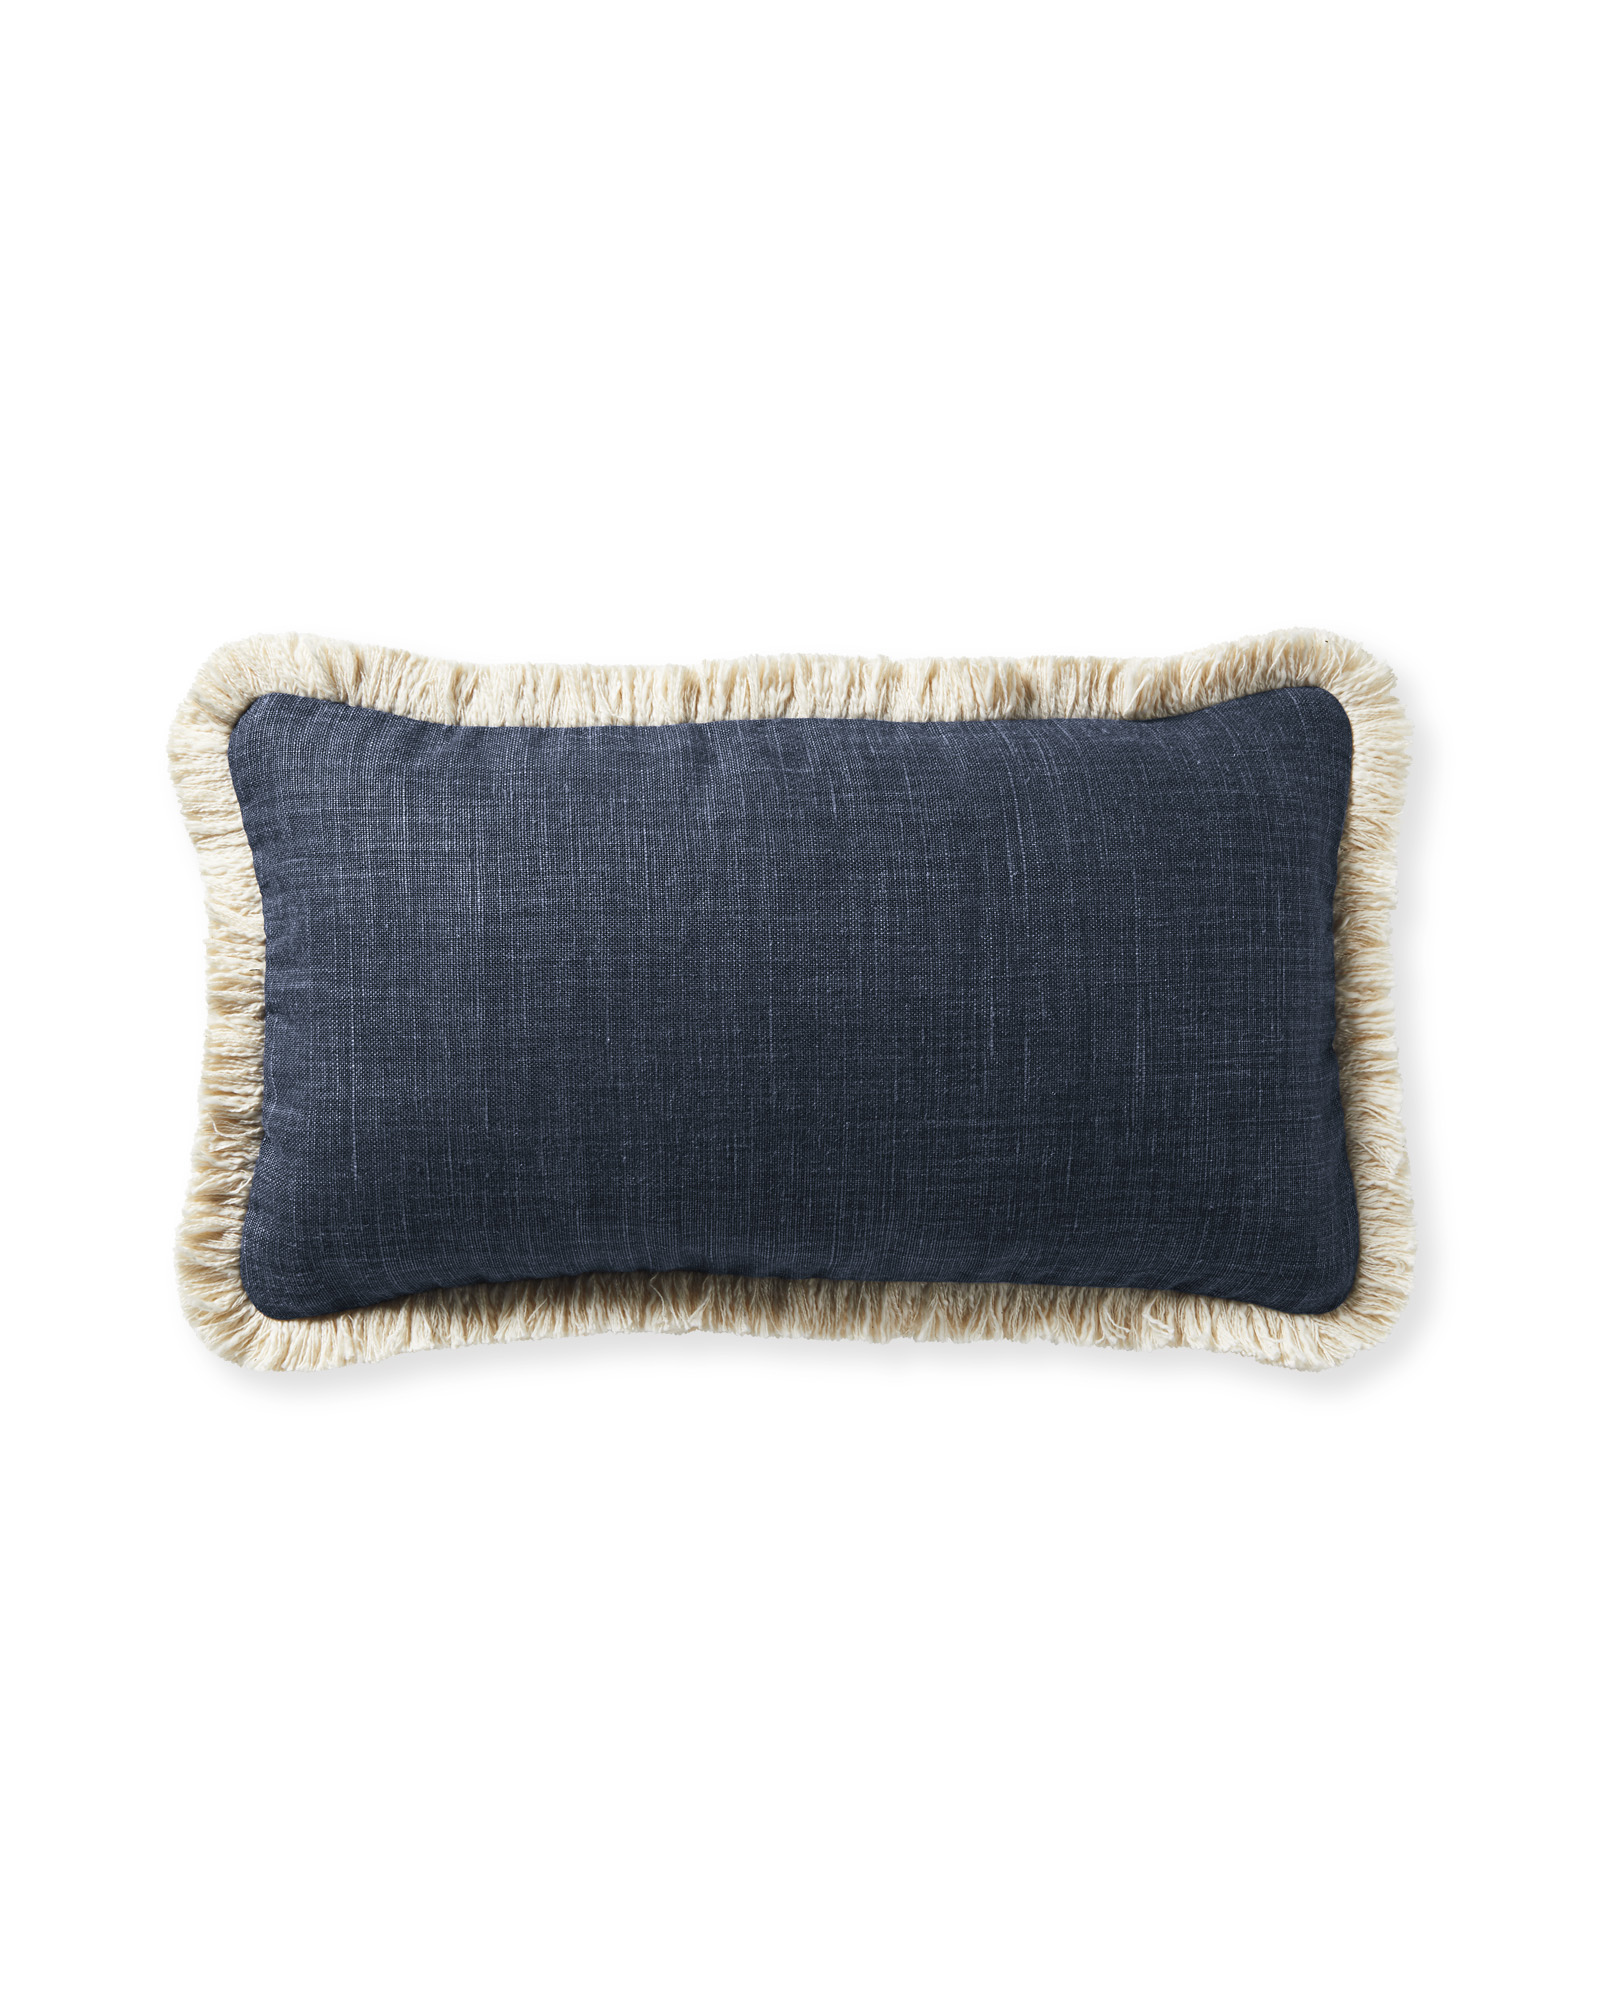 Bowden Pillow Cover, Navy